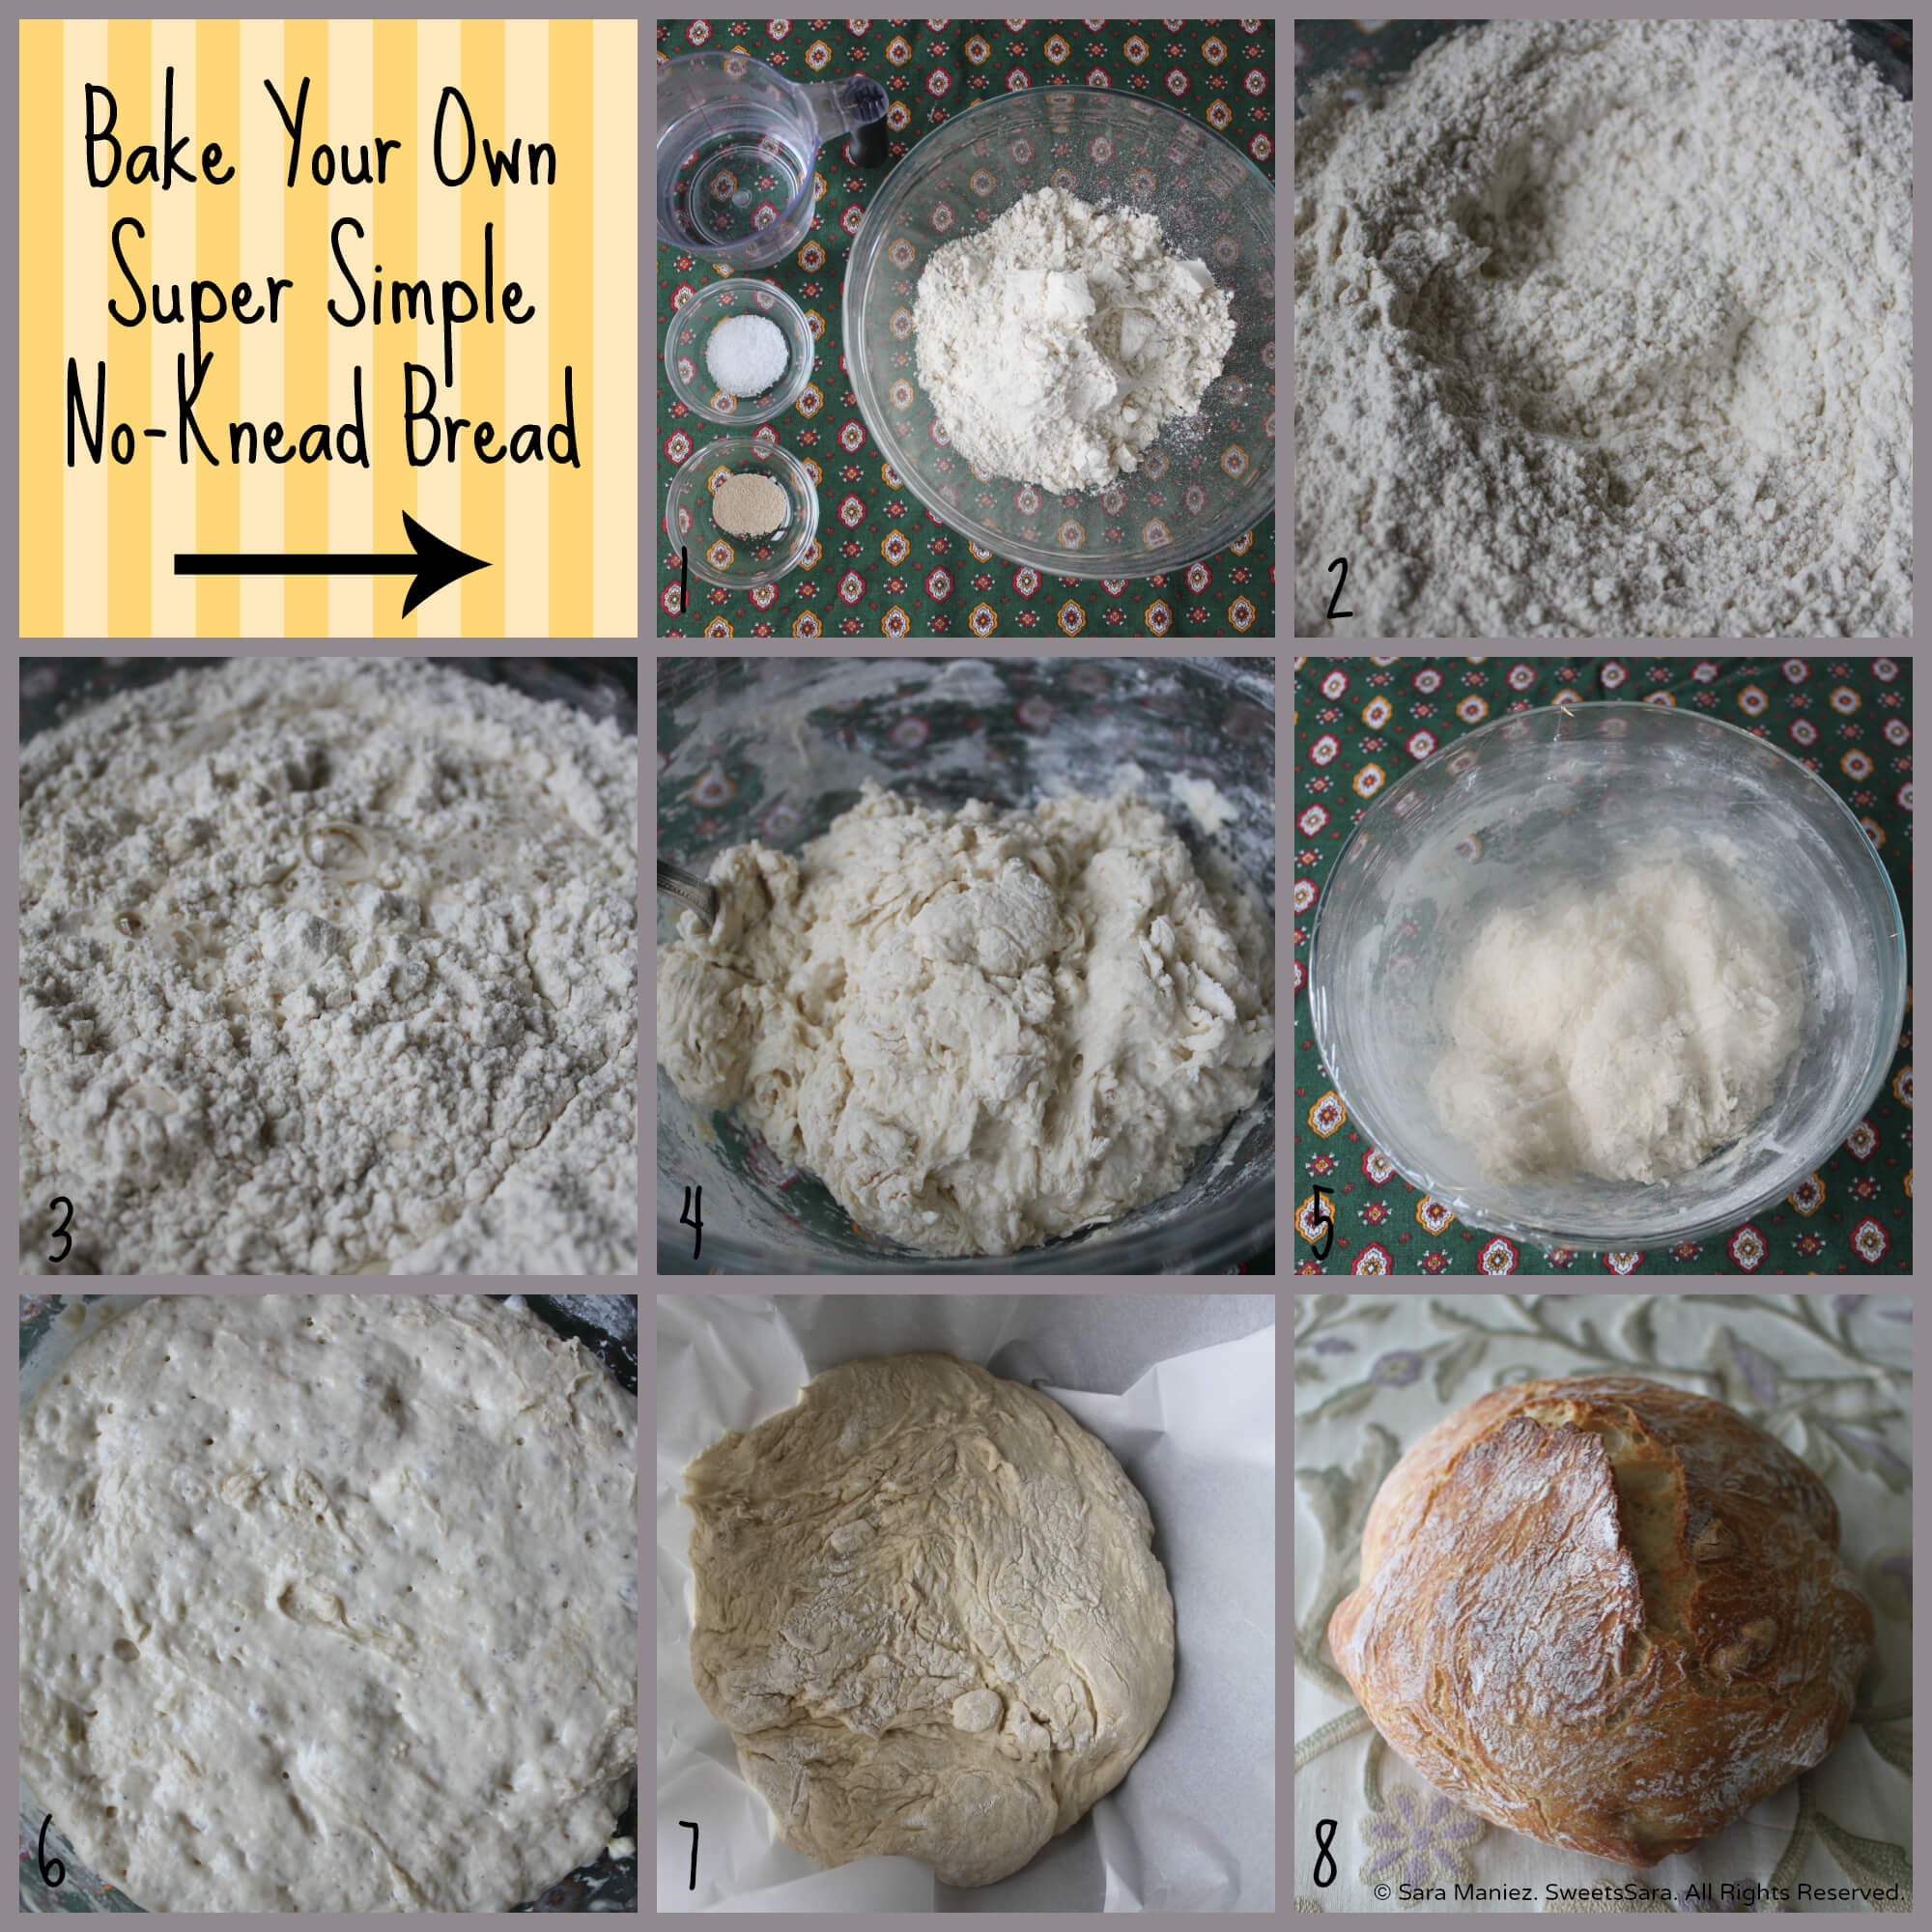 Fresh baked bread is a far superior experience compared to commercially produced bread with all those additives and preservatives. This recipe requires only four ingredients (flour, yeast, salt and water – how pure is that?), a little handling of the dough and with minimal effort, the result is fresh bread – you baked yourself! #lifeslittlesweets #bread #noknead #dutchoven #yeast